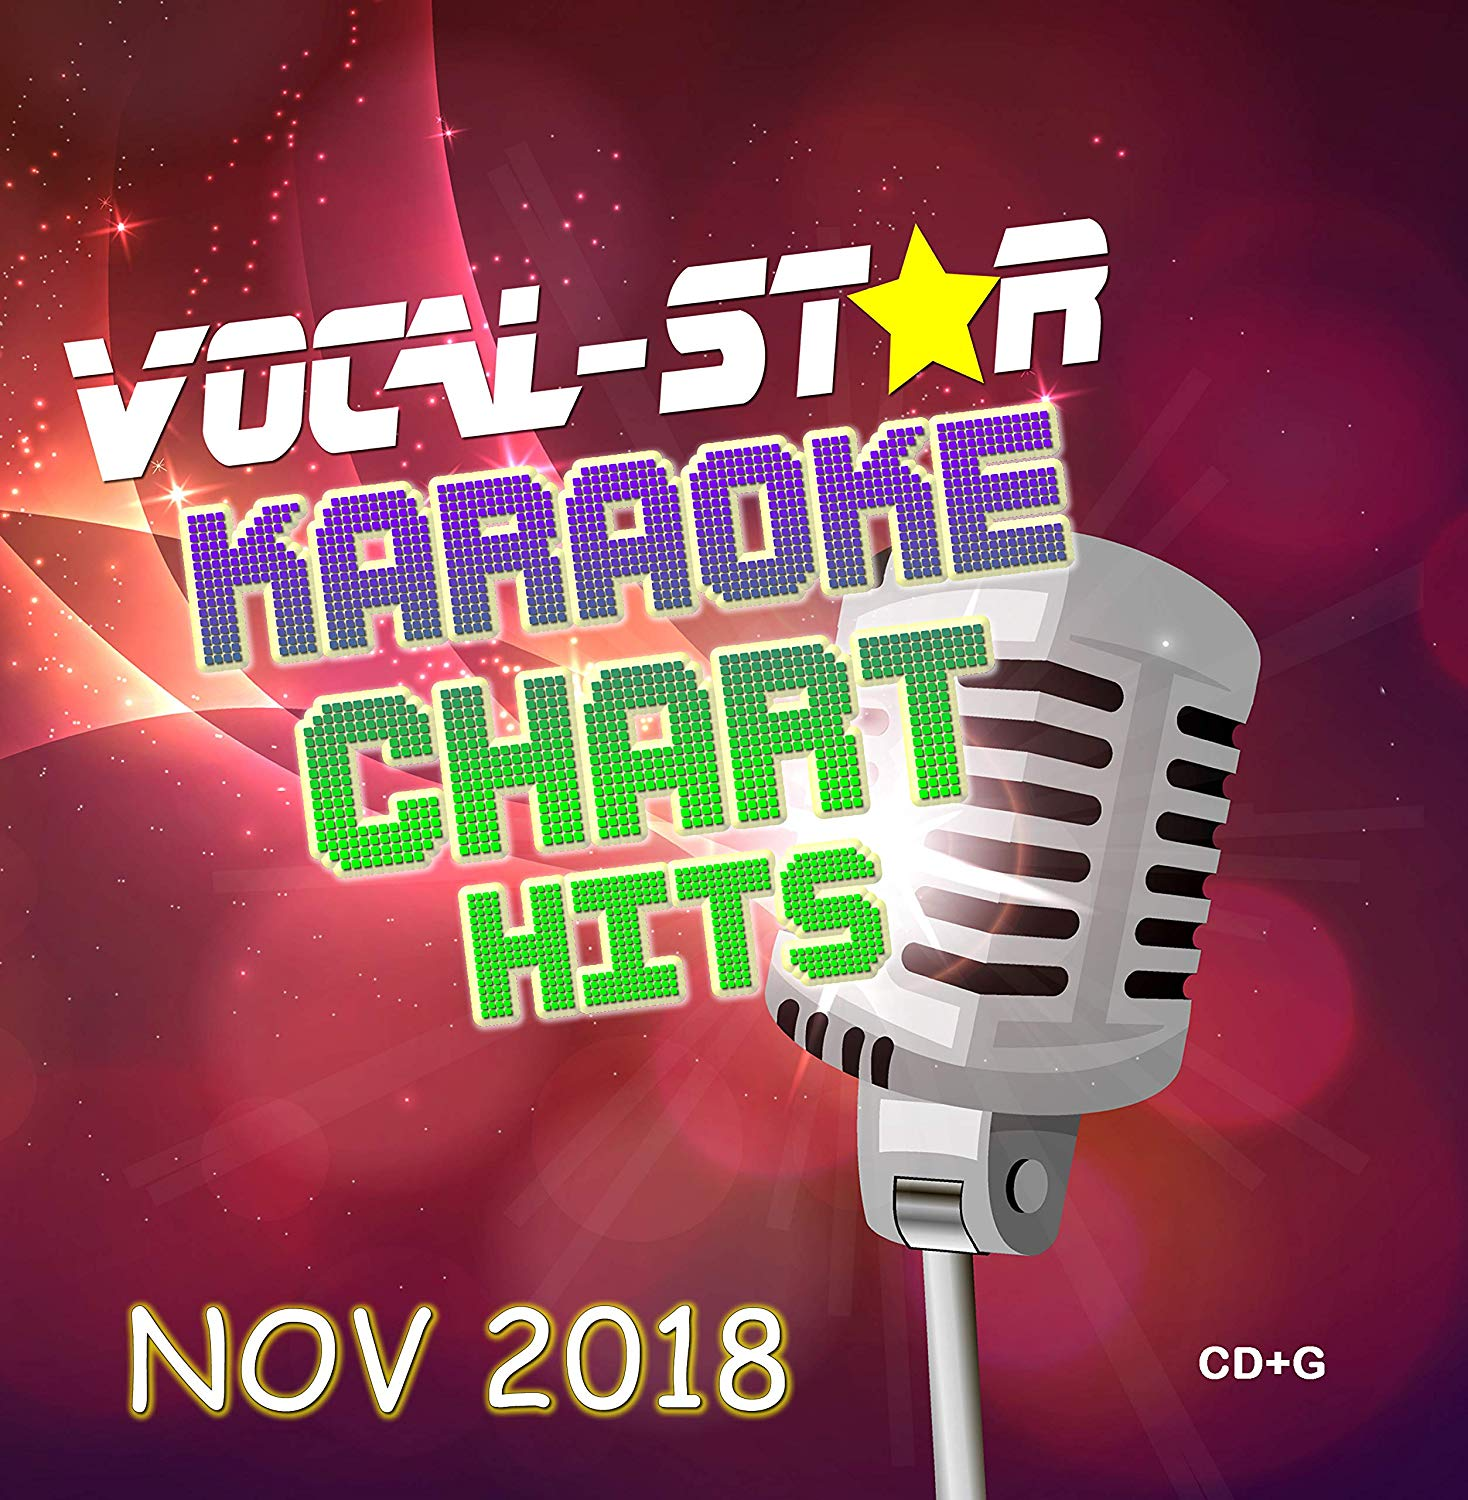 Vocal-Star November 2018 Hits CD+G Disc